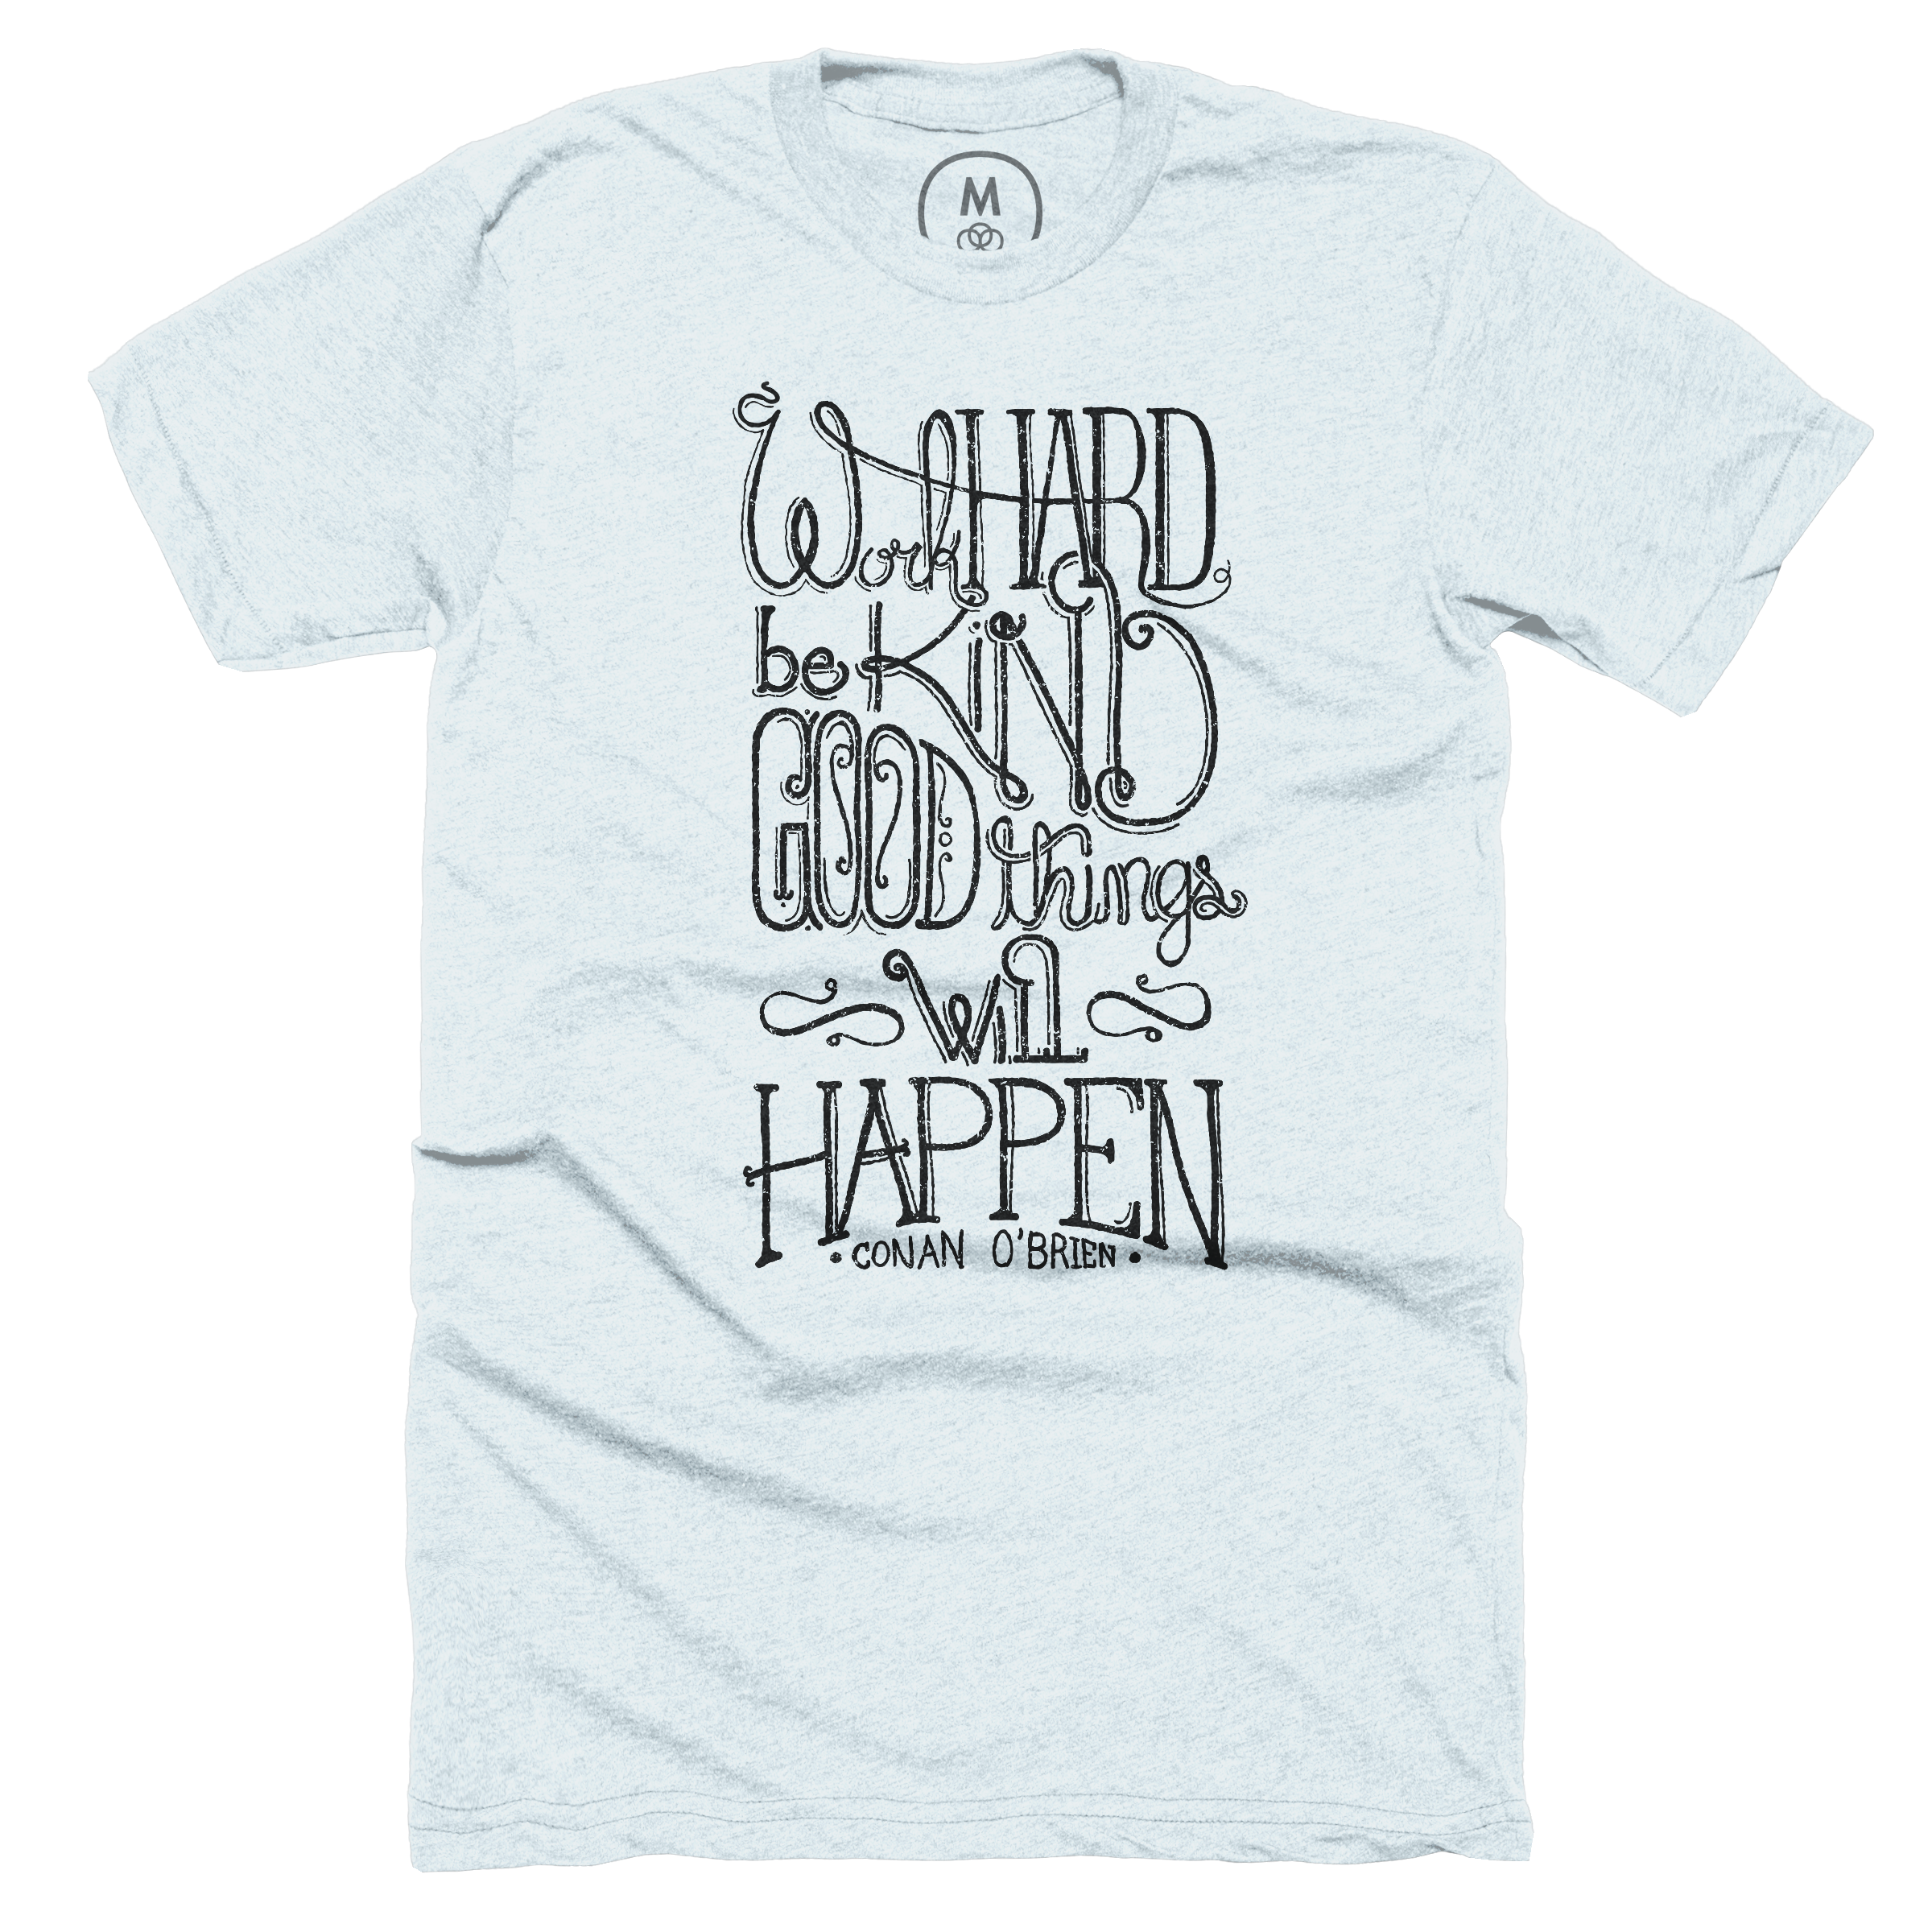 Work Hard, Be kind, Good things will happen